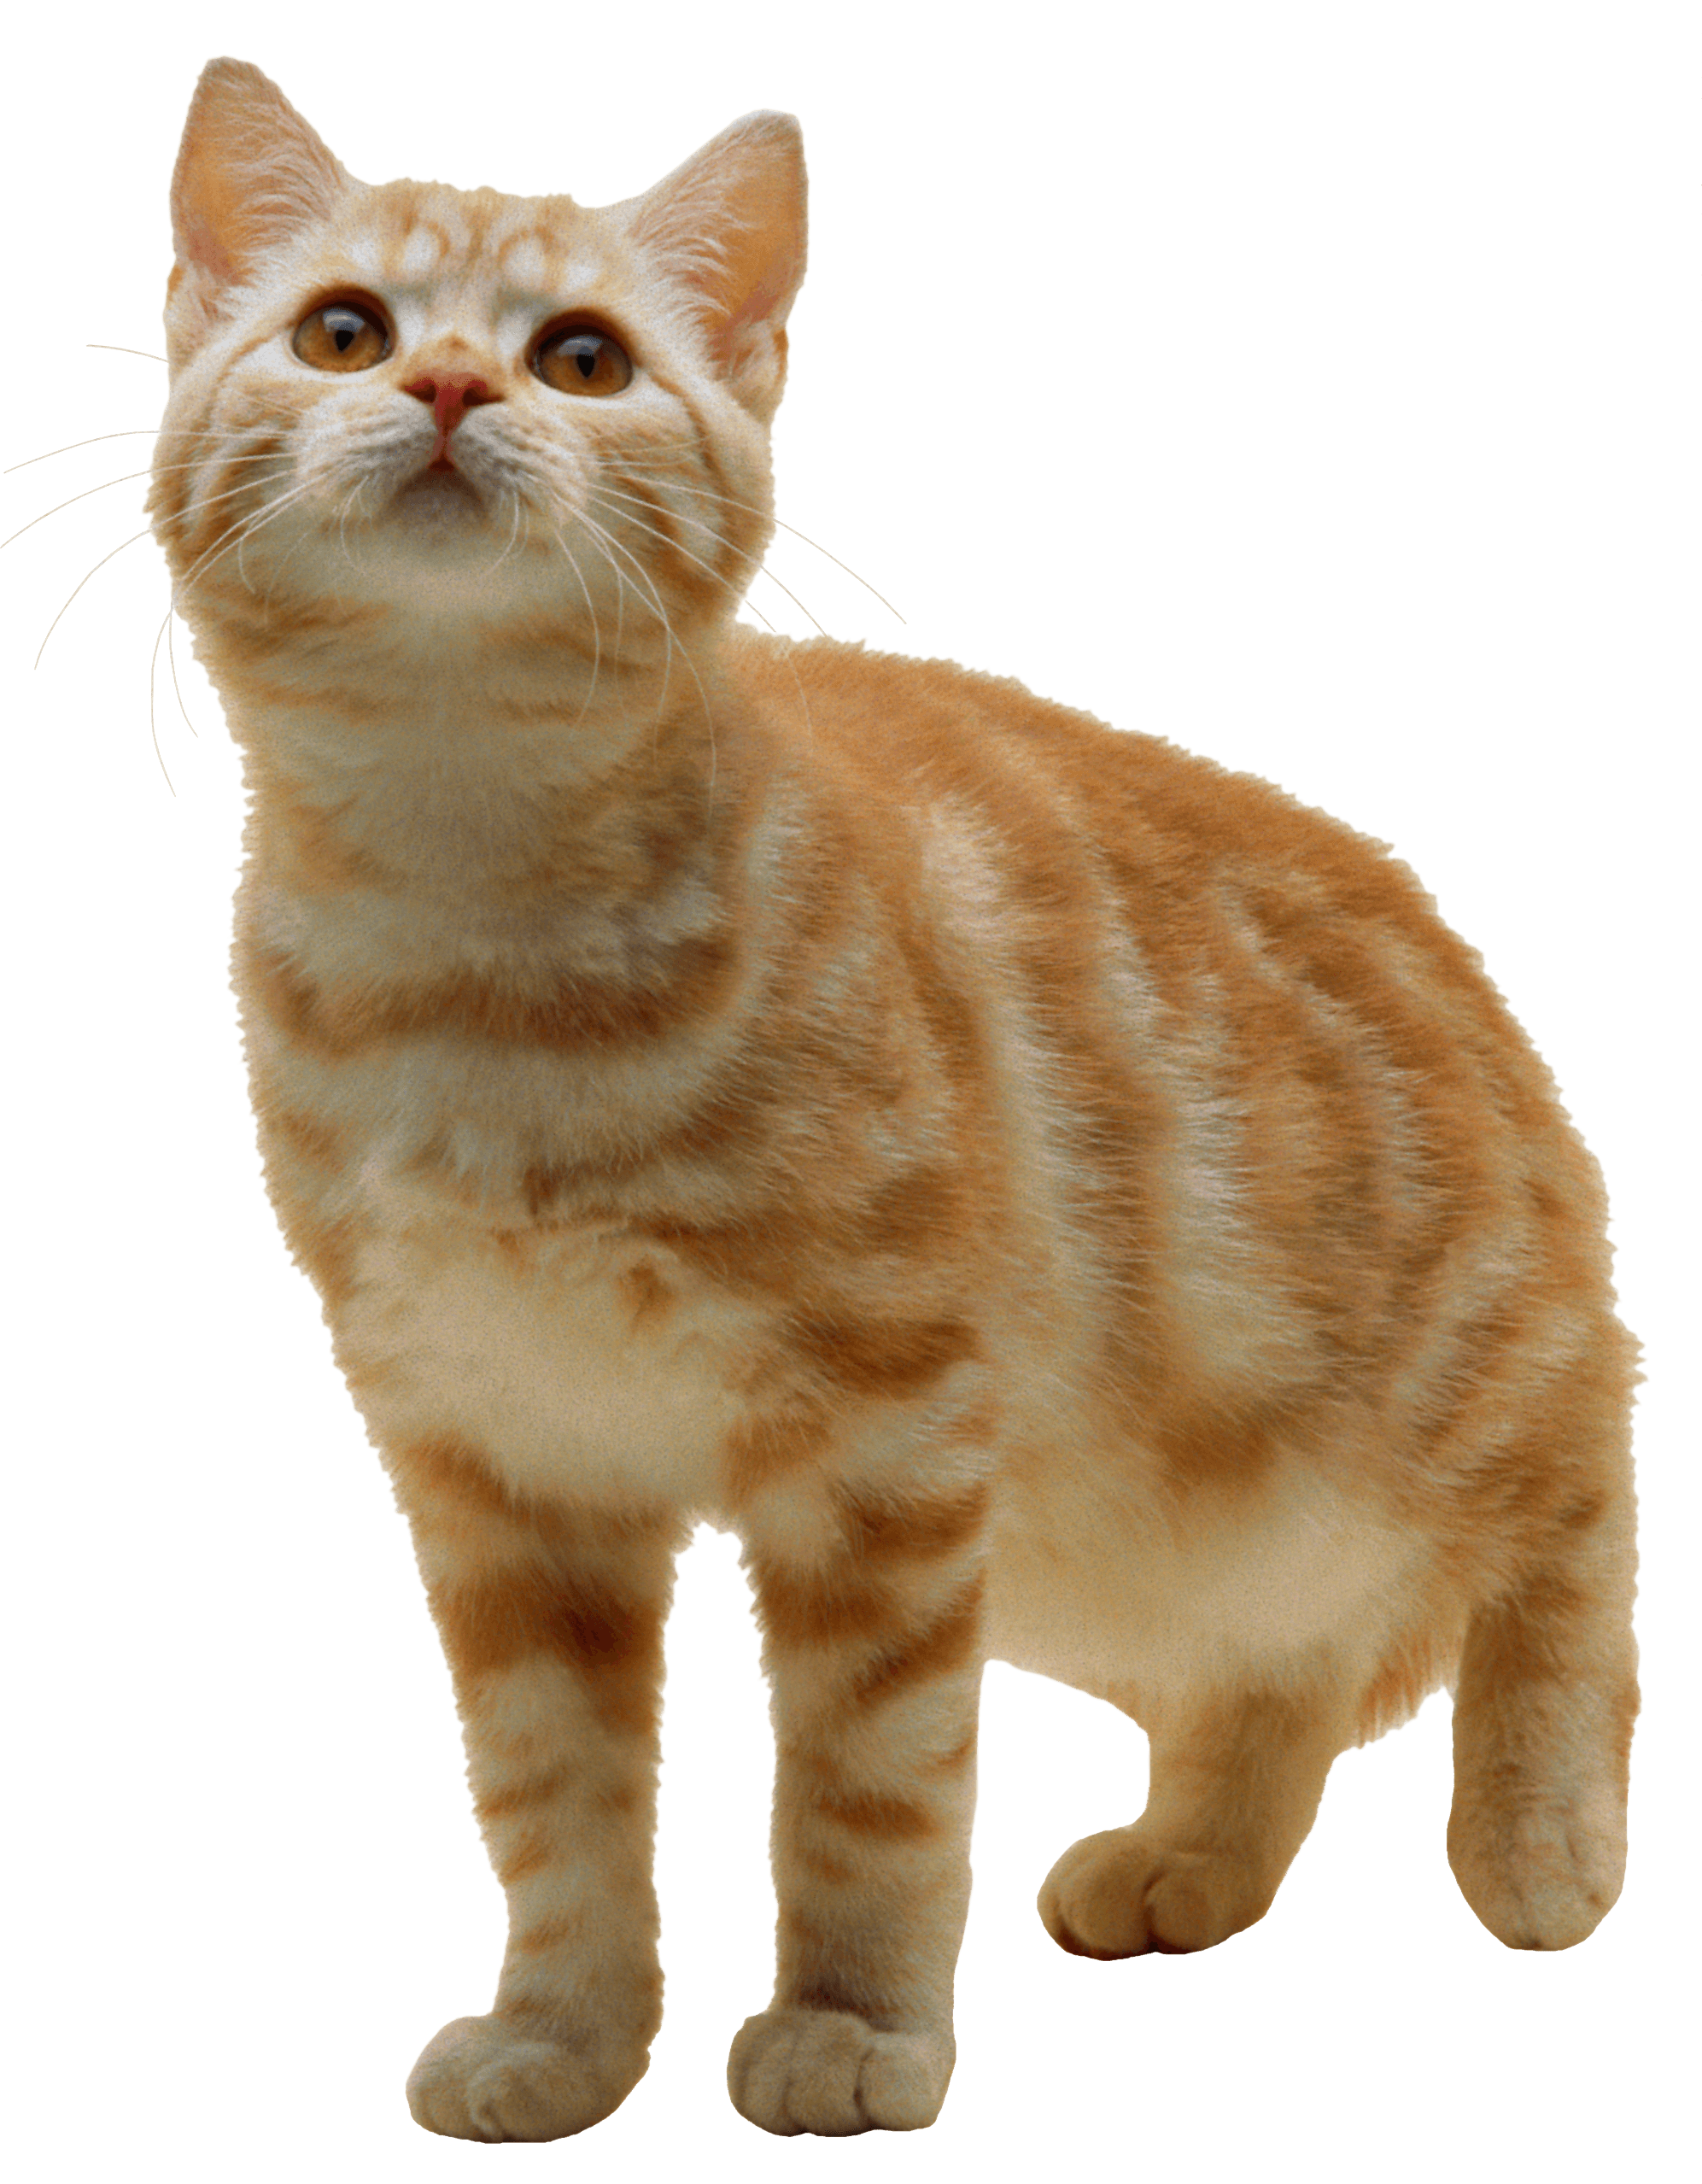 Cat Png Image Download Picture Kitten PNG Image